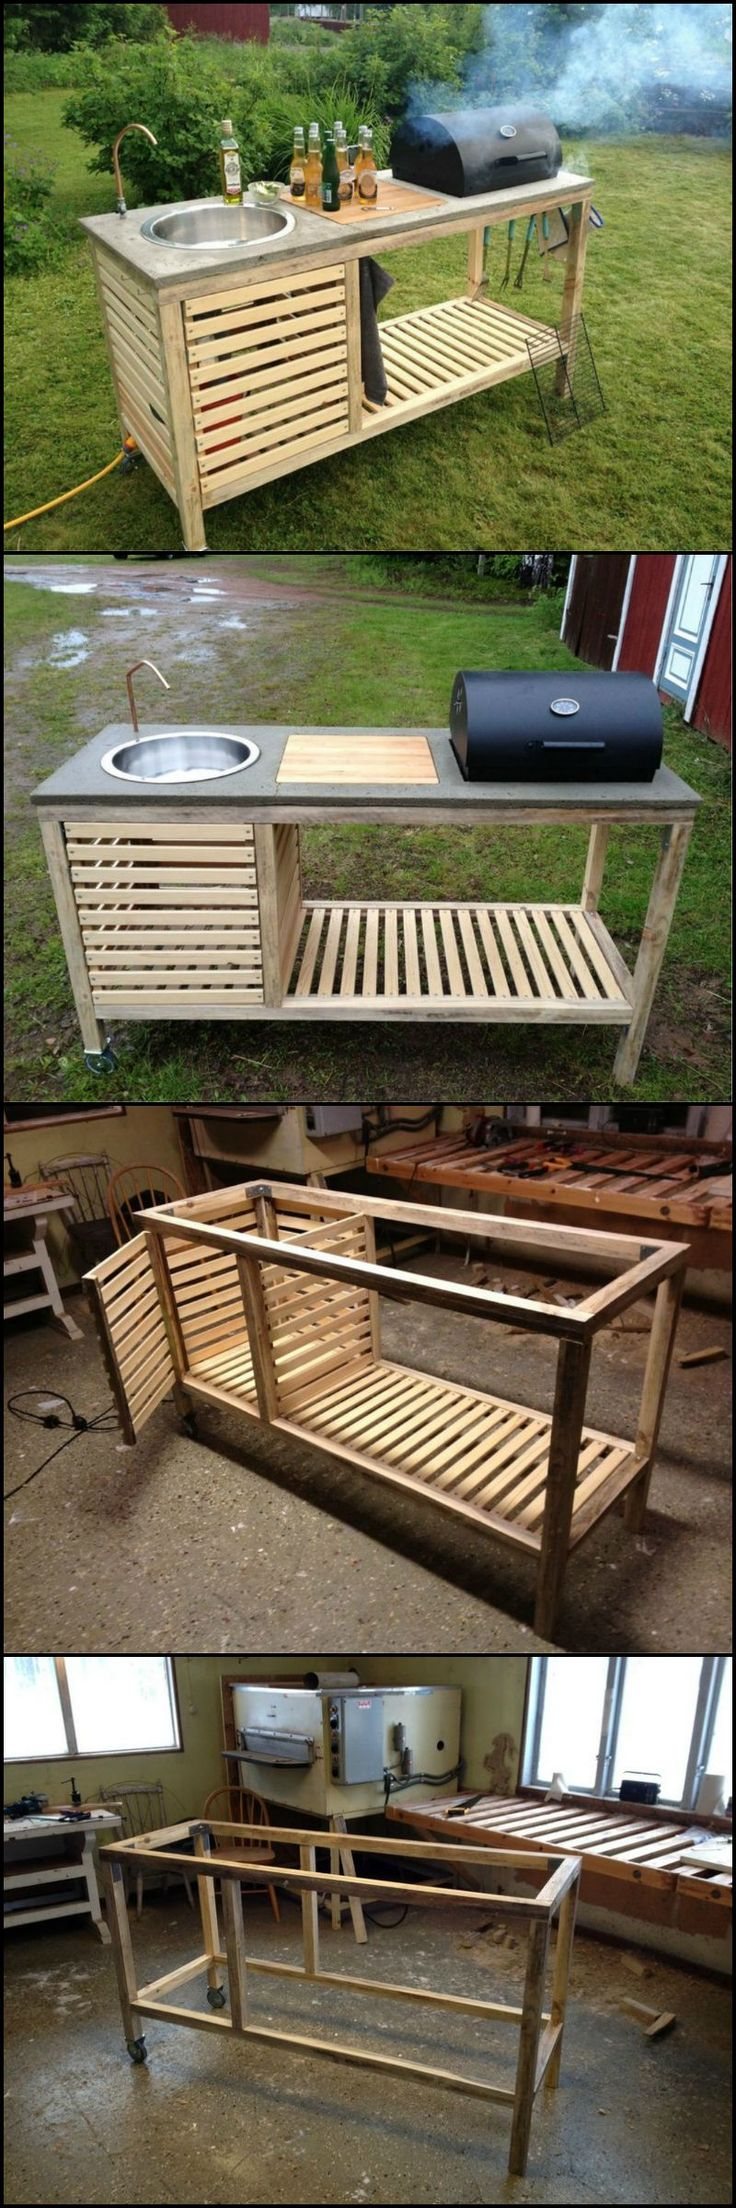 One of the great ways to enjoy the outdoor is through outdoor cooking. Outdoor kitchens have so many benefits and advantages but cost, usually, isn't one of them  http://diyprojects.ideas2live4.com/dlej  A full outdoor kitchen also requires dedicated space as well as your bank balance. If you don't have the dedicated space or the bank balance, don't despair…  This portable barbecue is a clever solution!